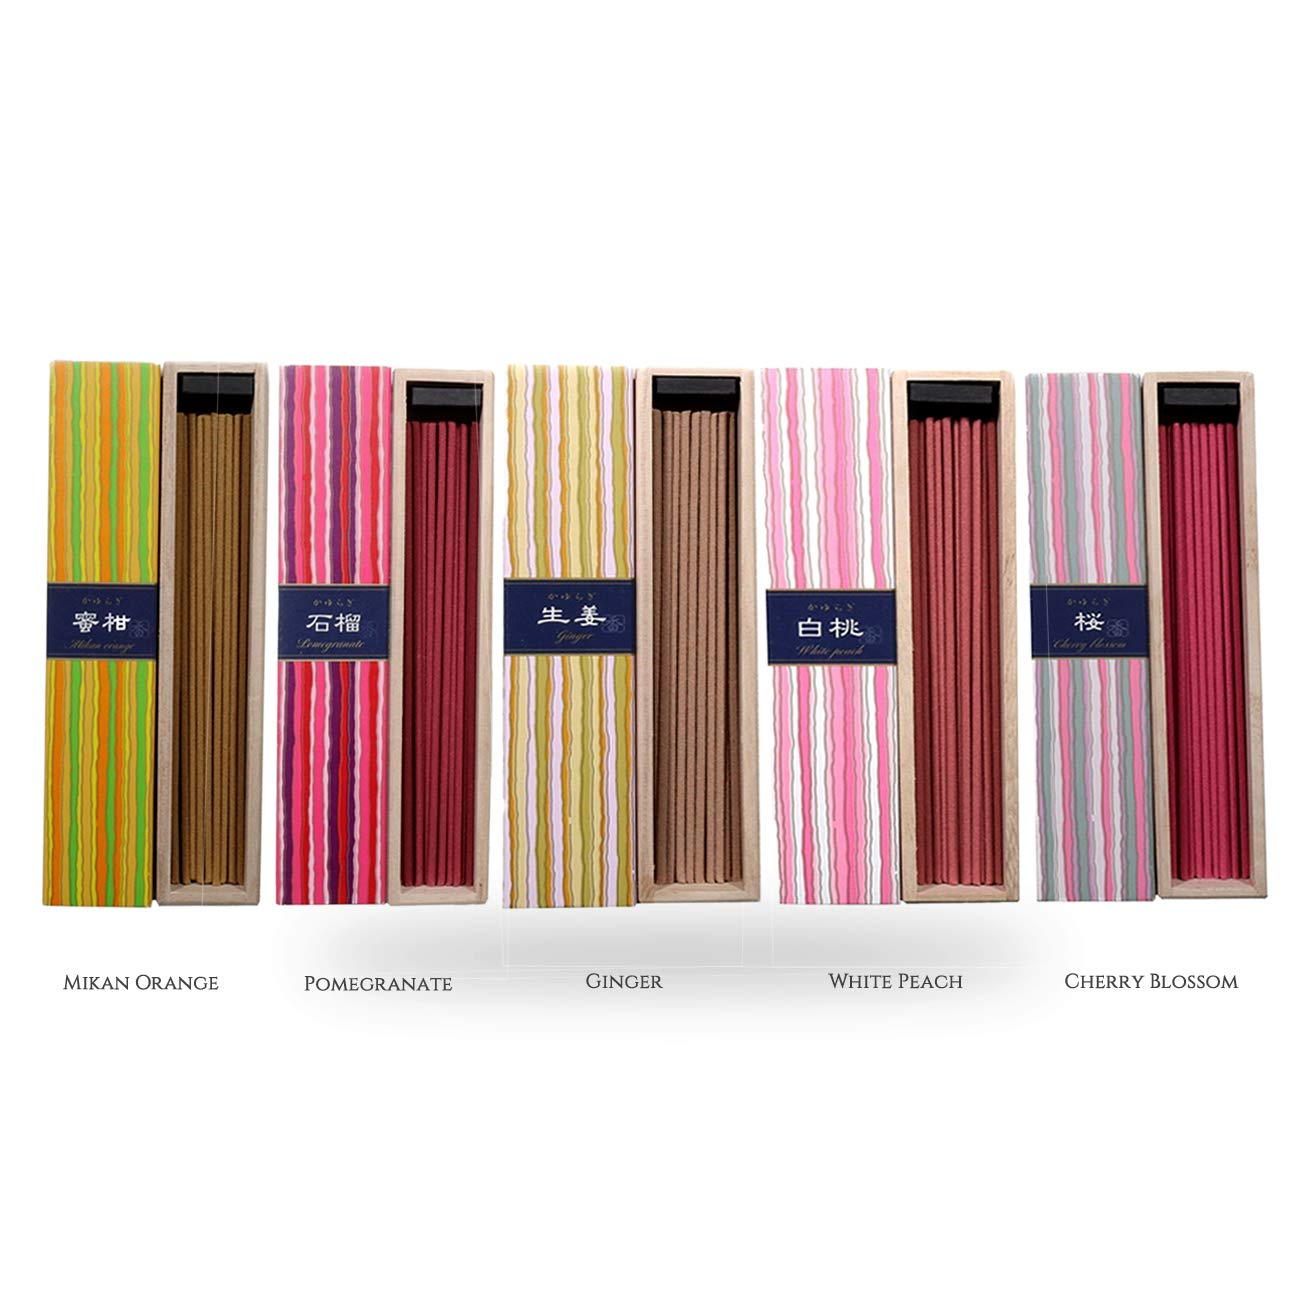 nippon kodo Kayuragi Incense Collection   The Garden of Japan Bundle 40x5   Floral and Aromatic Wood Scents for Relaxation, Meditation, Prayer, Reading, Yoga   Clean Burning, Pure Scent by nippon kodo